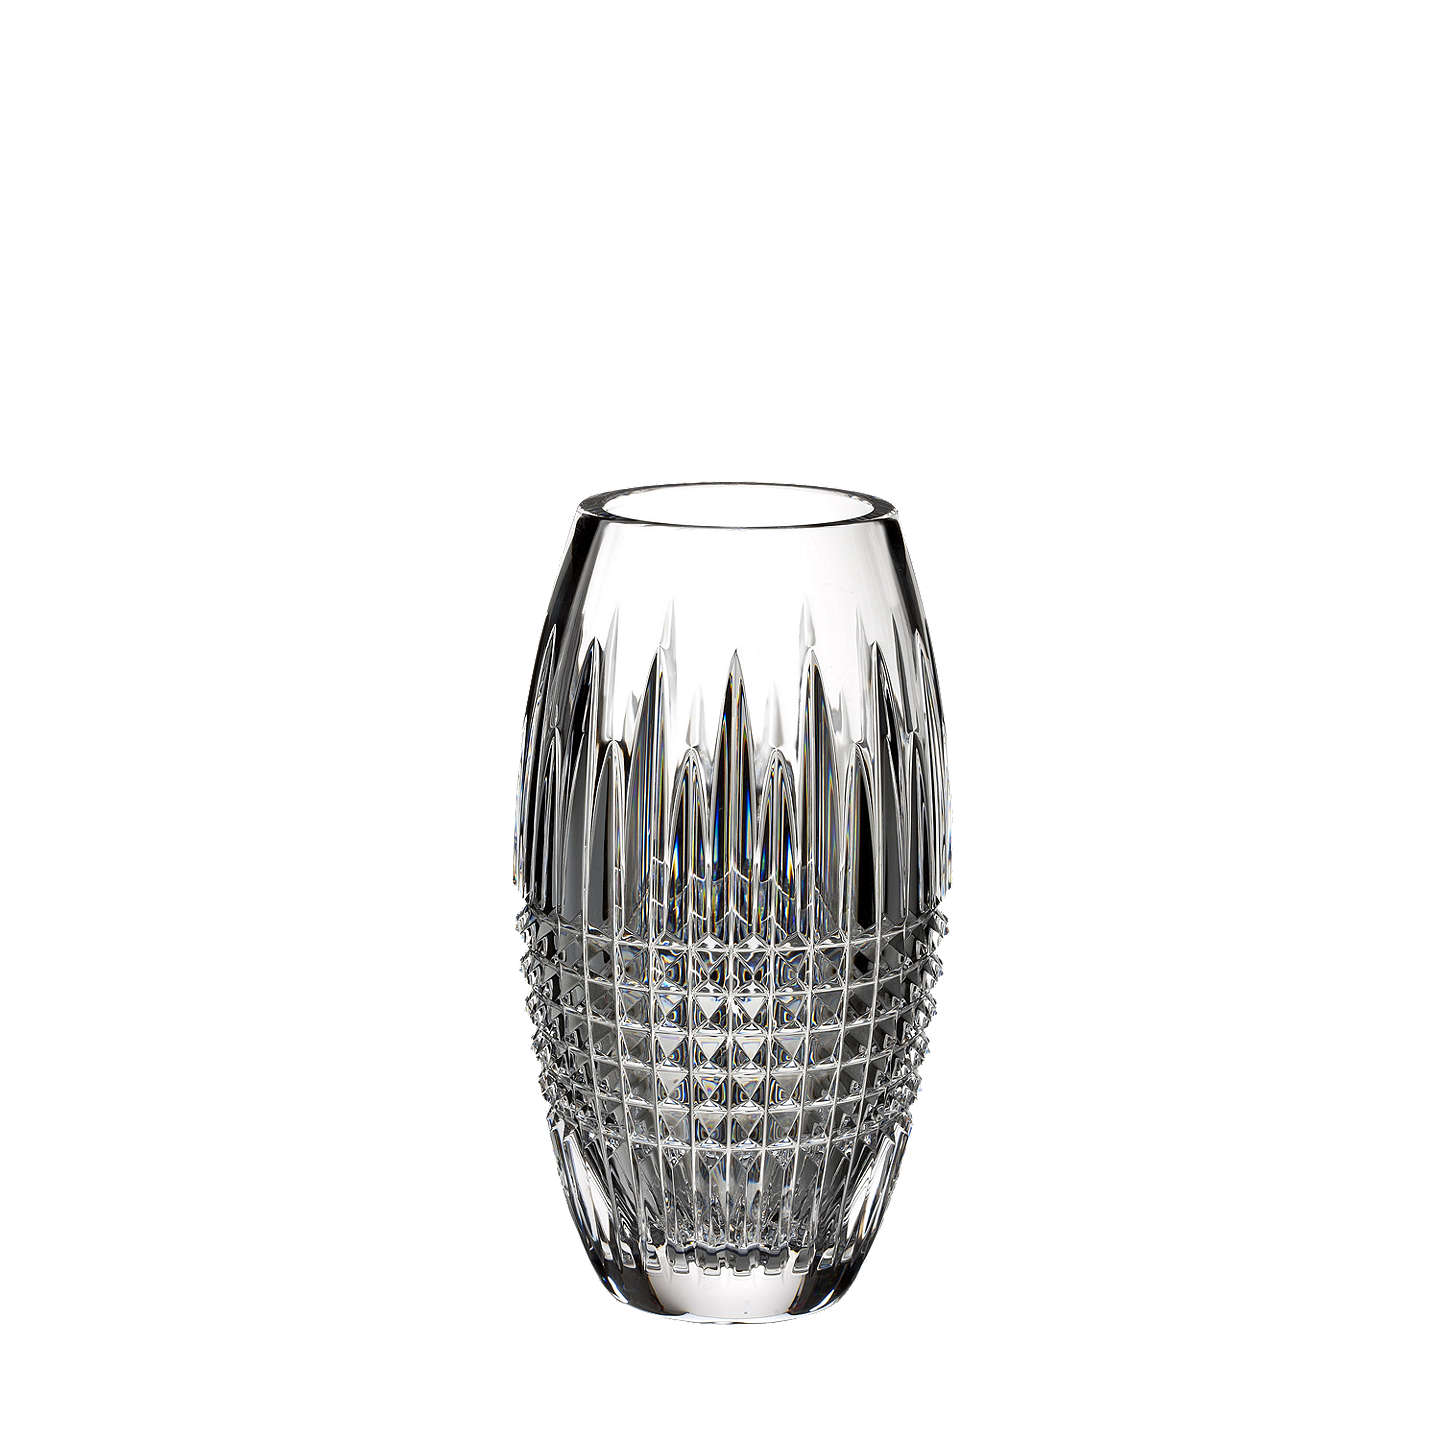 "BuyWaterford Lismore Diamond Encore Crystal Vase, 8"" Online at johnlewis.com"